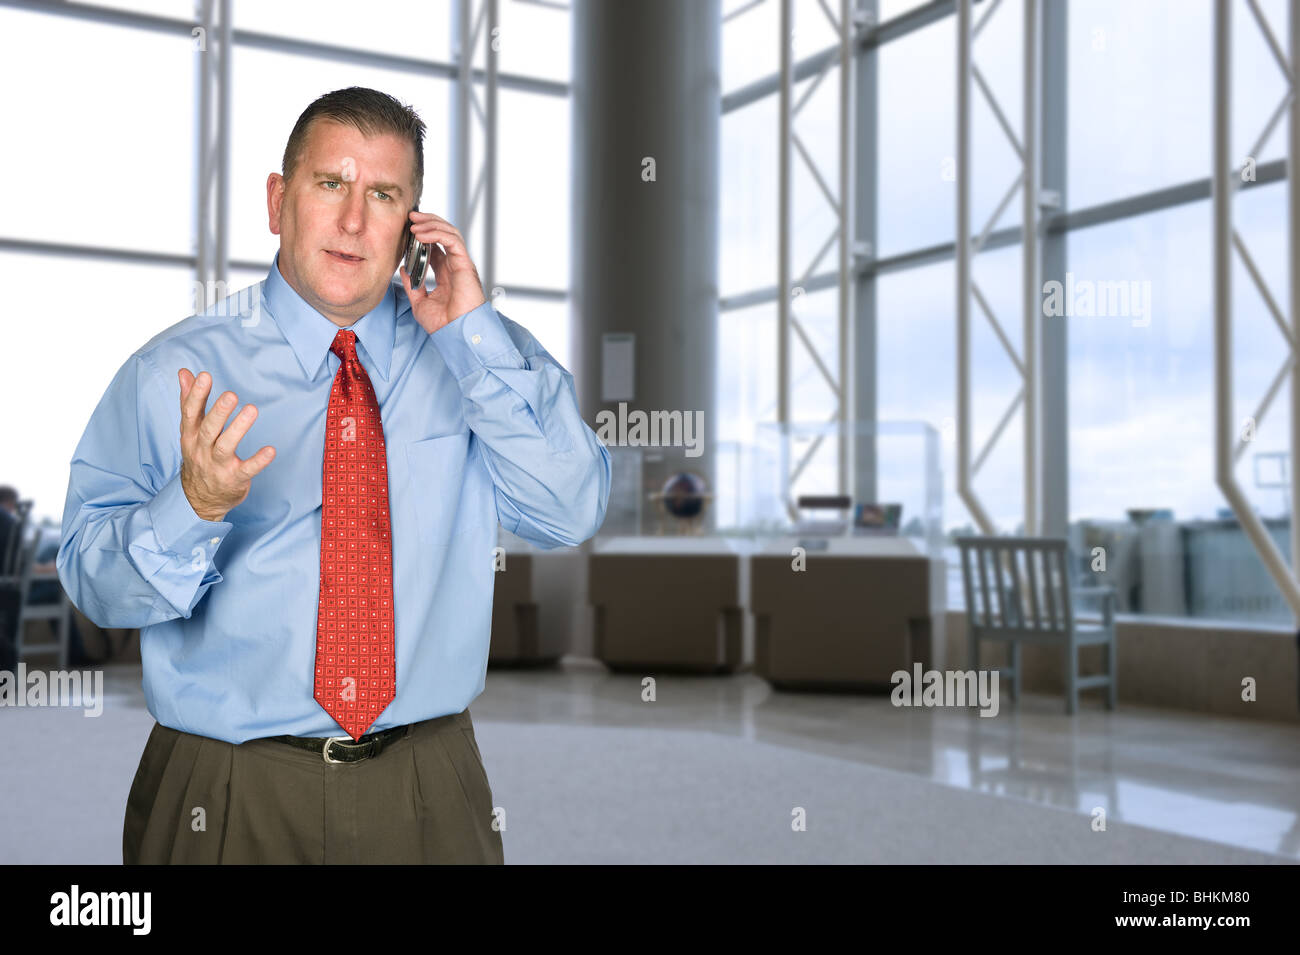 A businessman talking on his cell phone is not happy with the tone of the conversation. - Stock Image